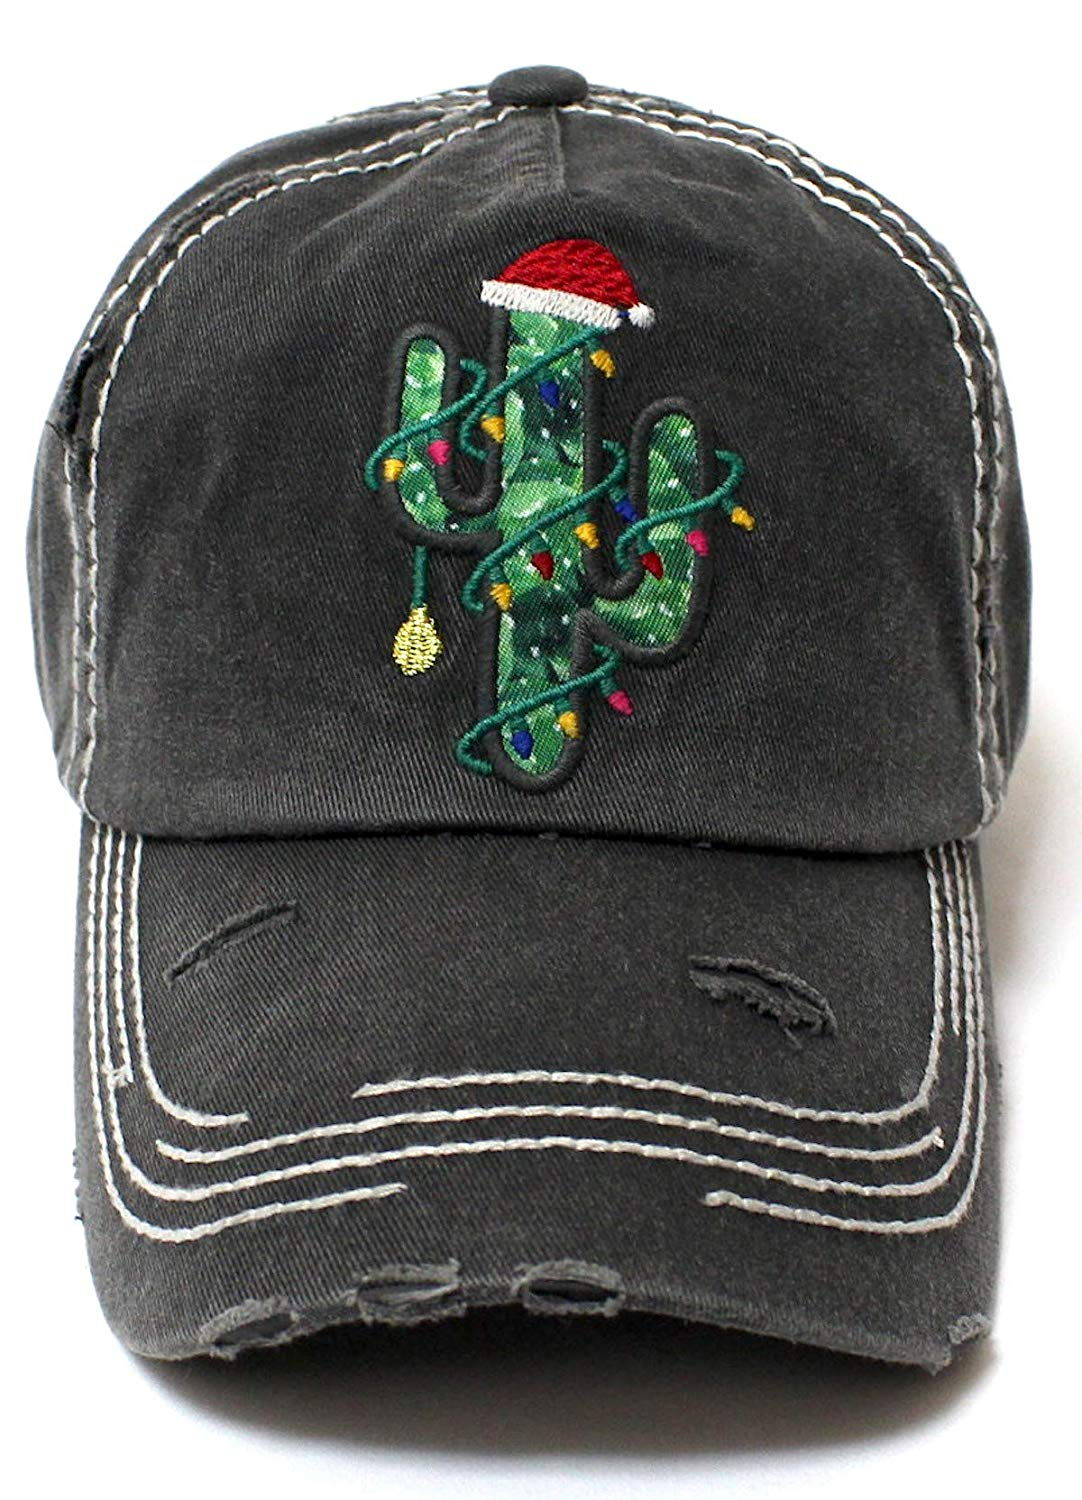 CAPS 'N VINTAGE Women's Santa Hat, Christmas Tree Cactus Embroidery Hat - Caps 'N Vintage